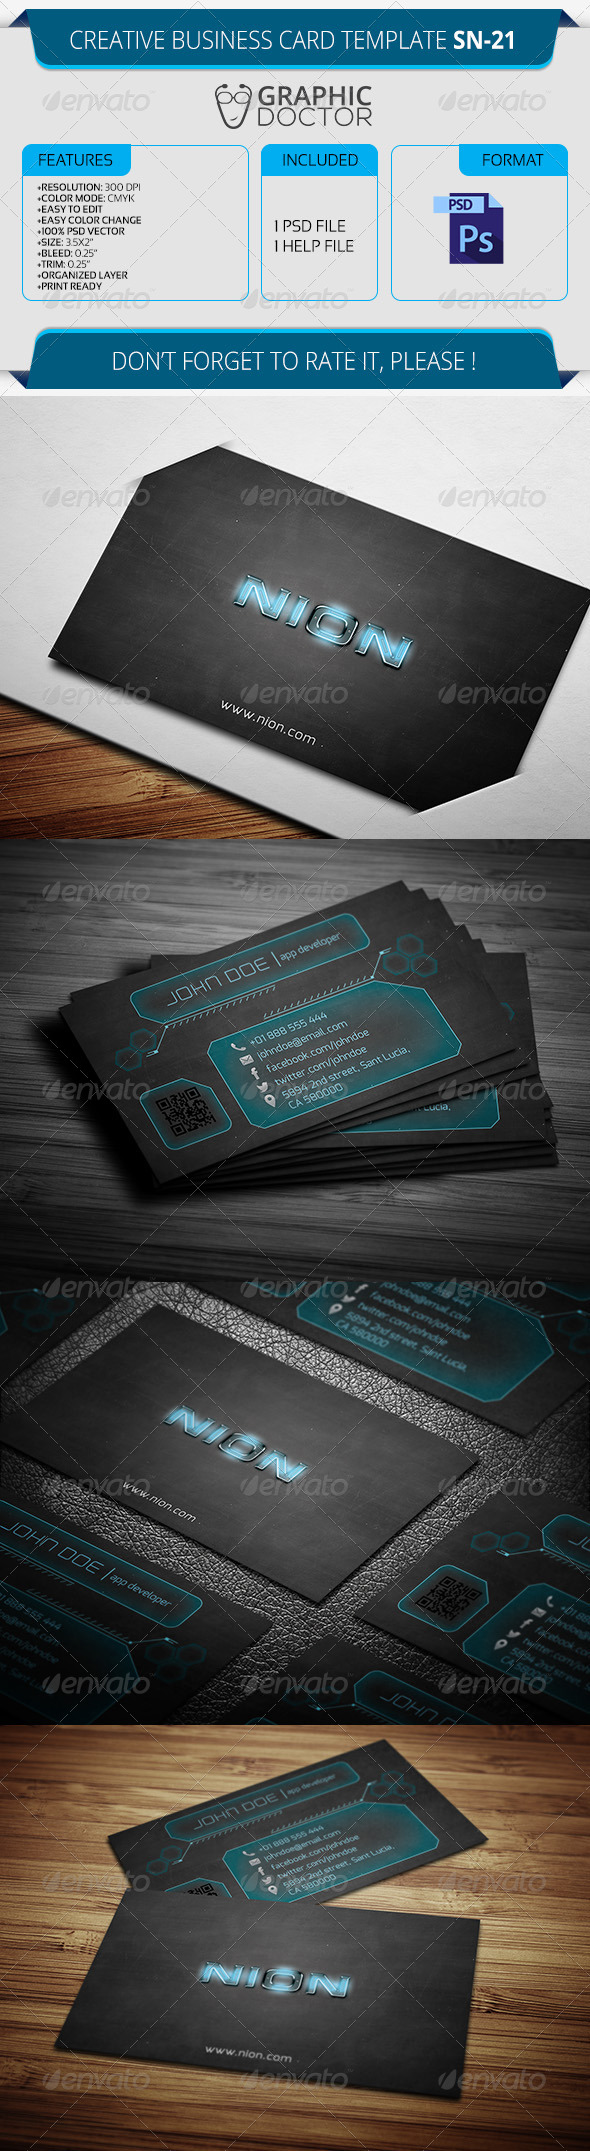 Creative Business Card Template SN-21 - Creative Business Cards